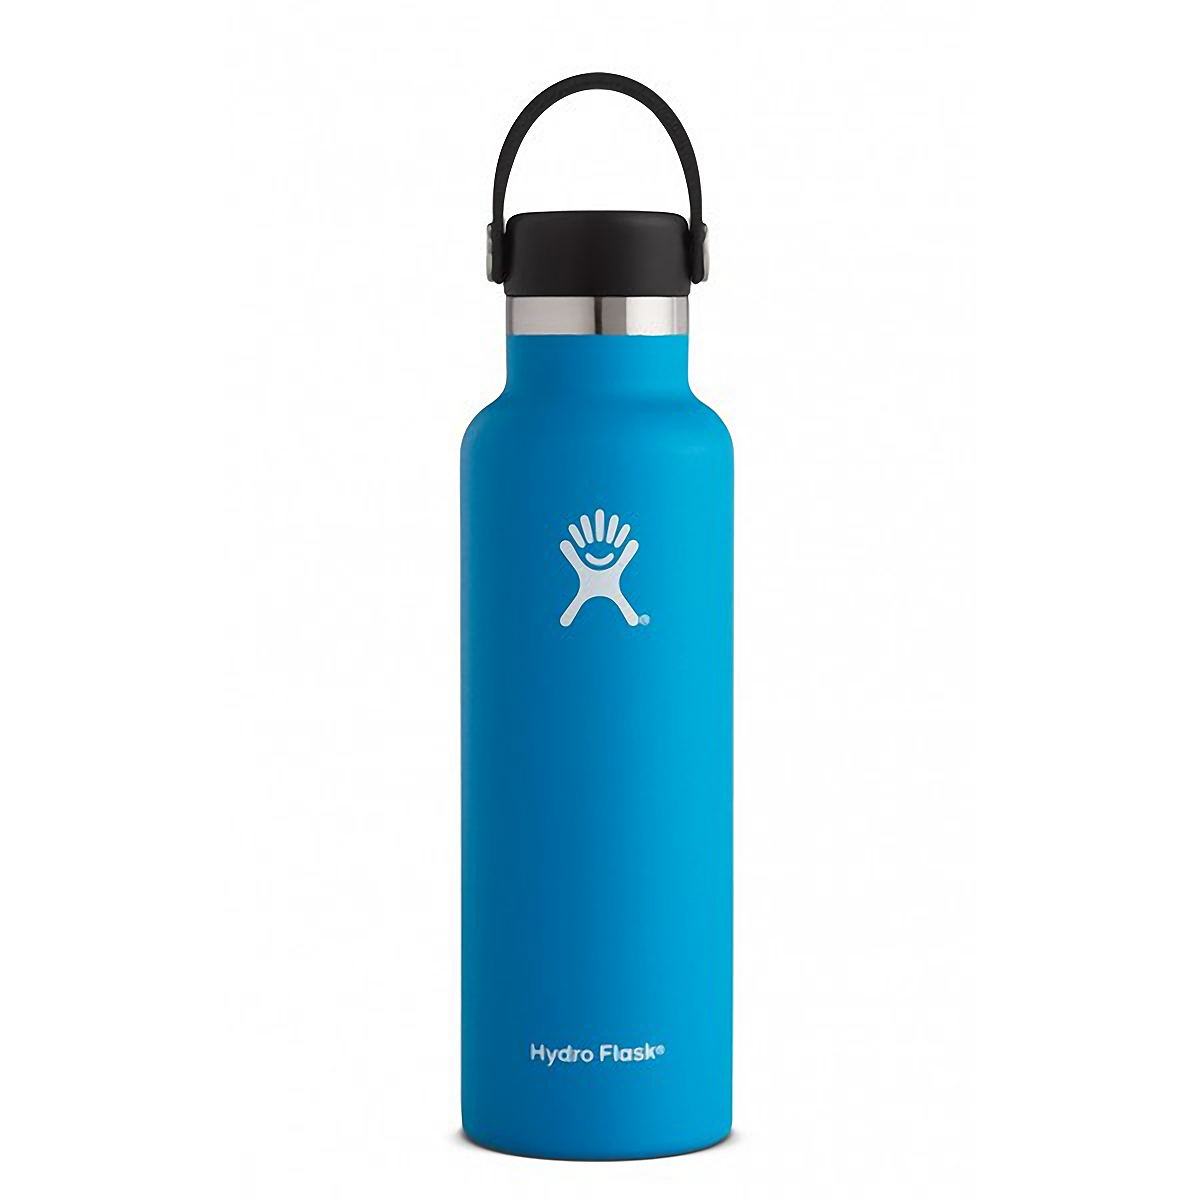 Unisex Hydro Flask 21 oz Standard Mouth Bottle - Color: Pacific Size: One Size, Blue, large, image 1